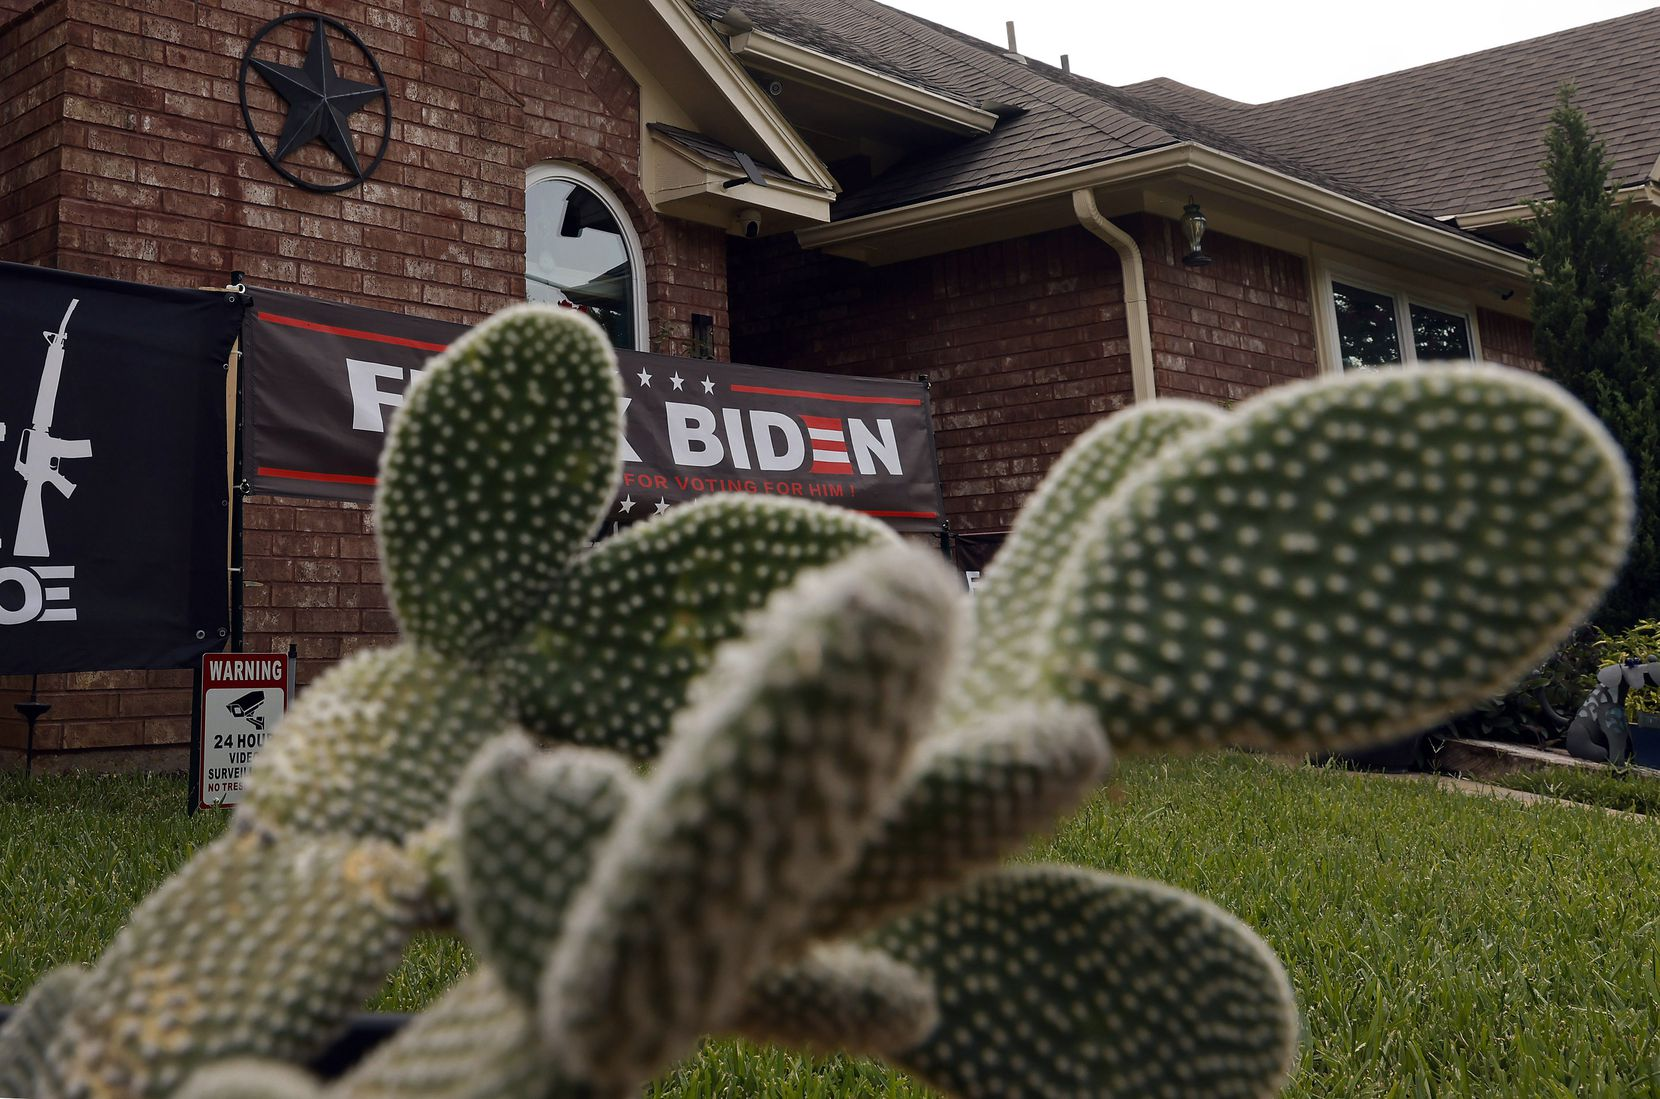 Three signs featuring expletives aimed at President Joe Biden and Vice President Kamala Harris have irked a Grapevine neighborhood. The signs in front of William Vitalec's house are photographed, Thursday, July 29, 2021.